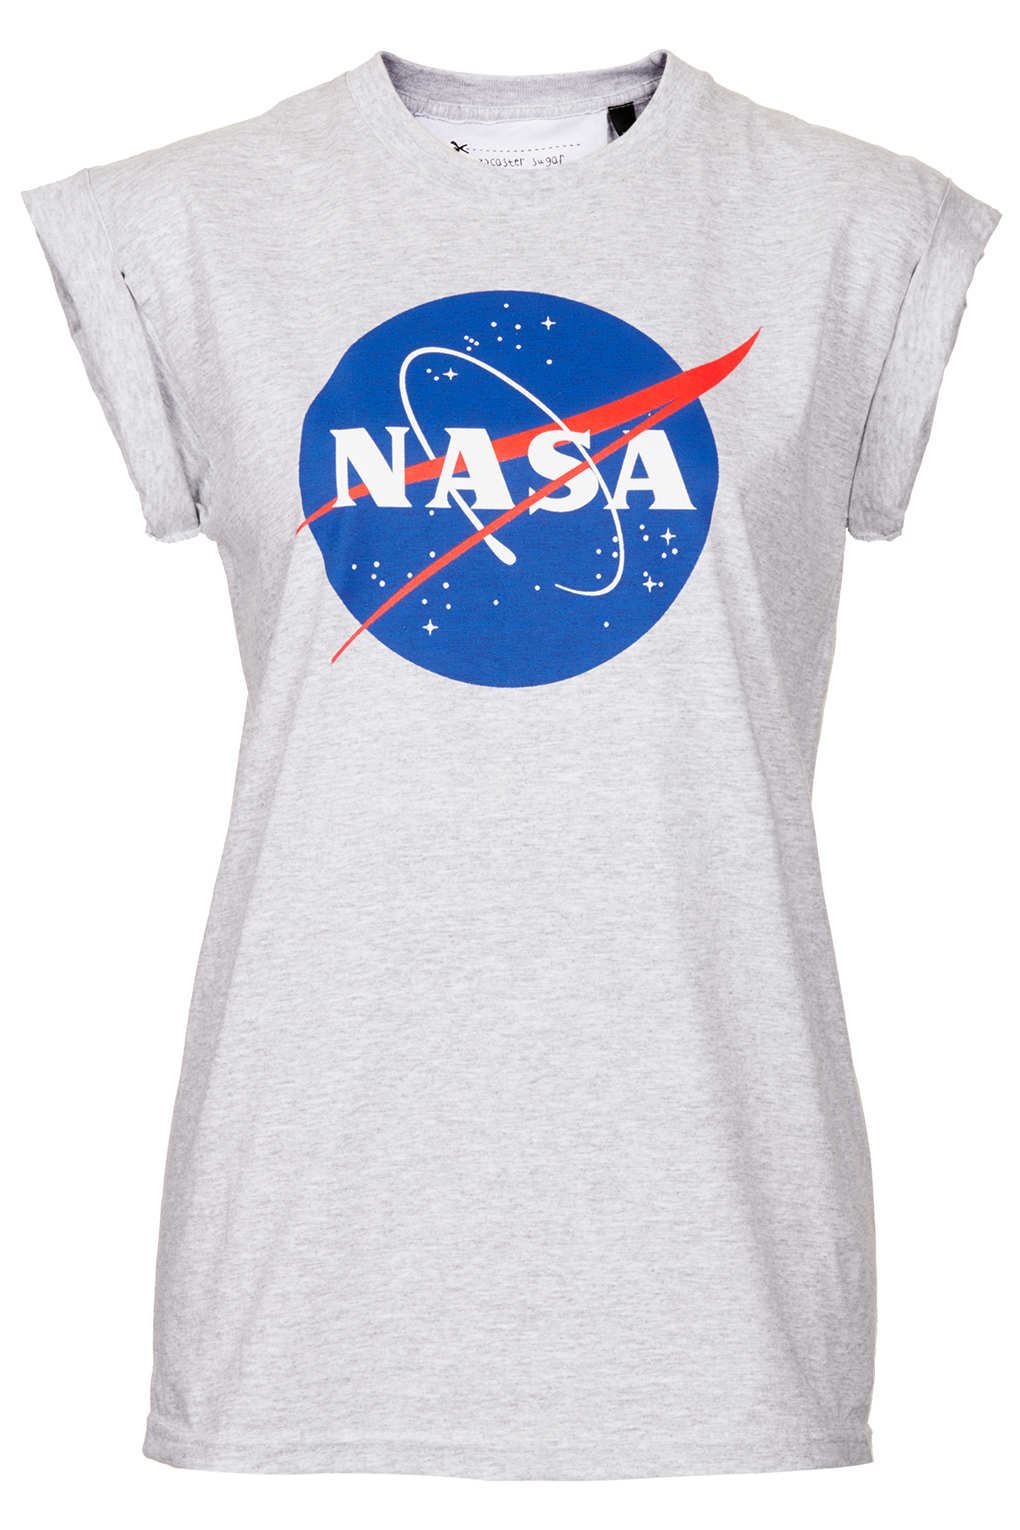 how to get a carrer at nasa